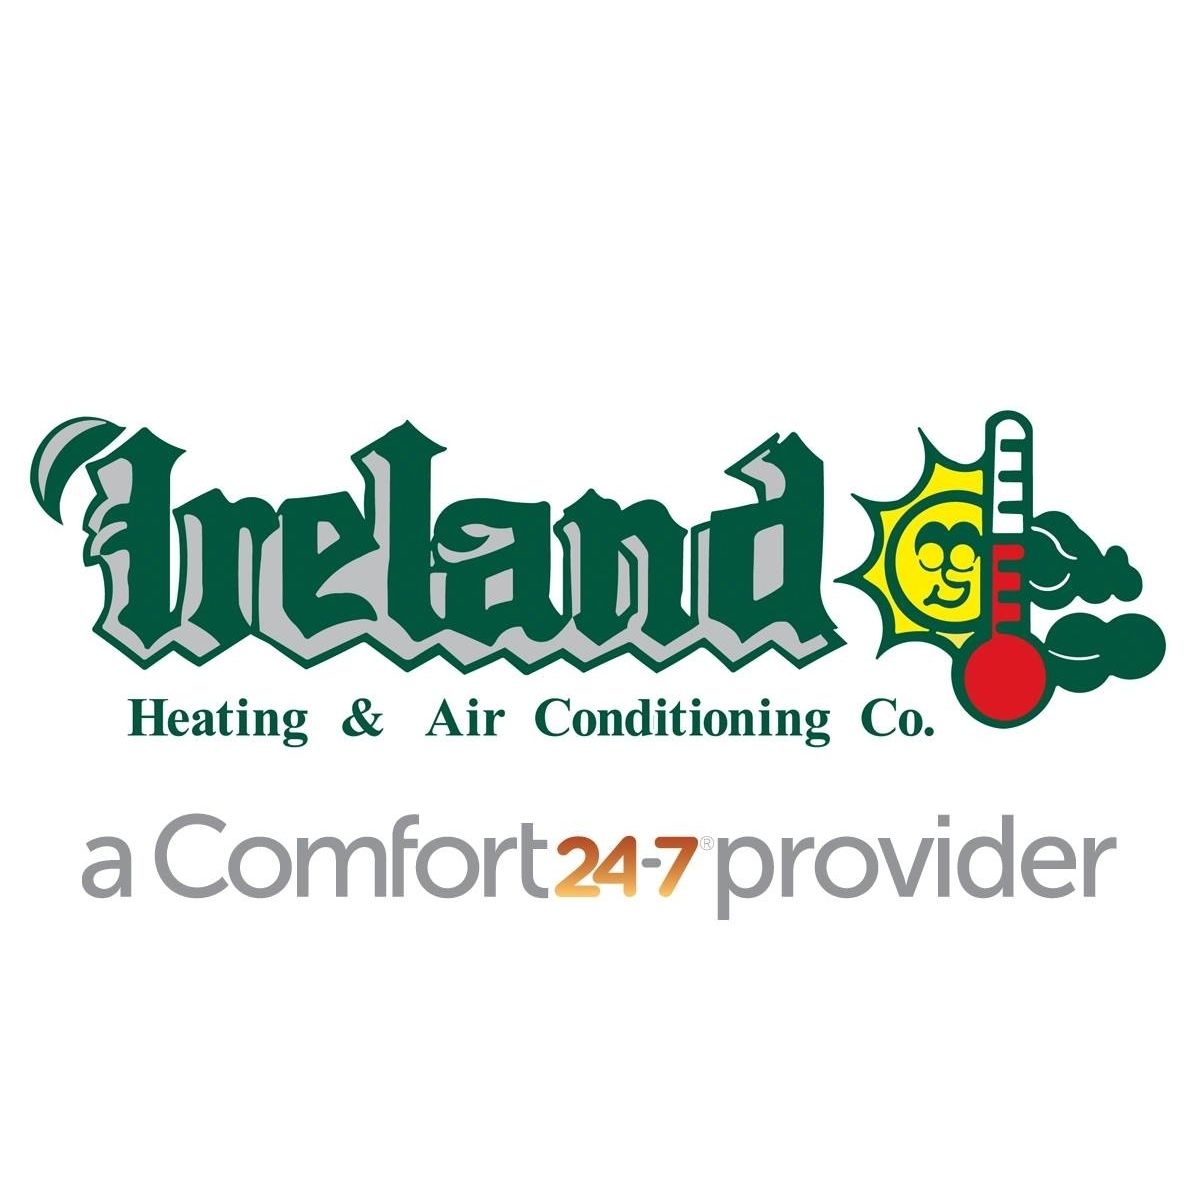 Ireland Heating & Air Conditioning Co